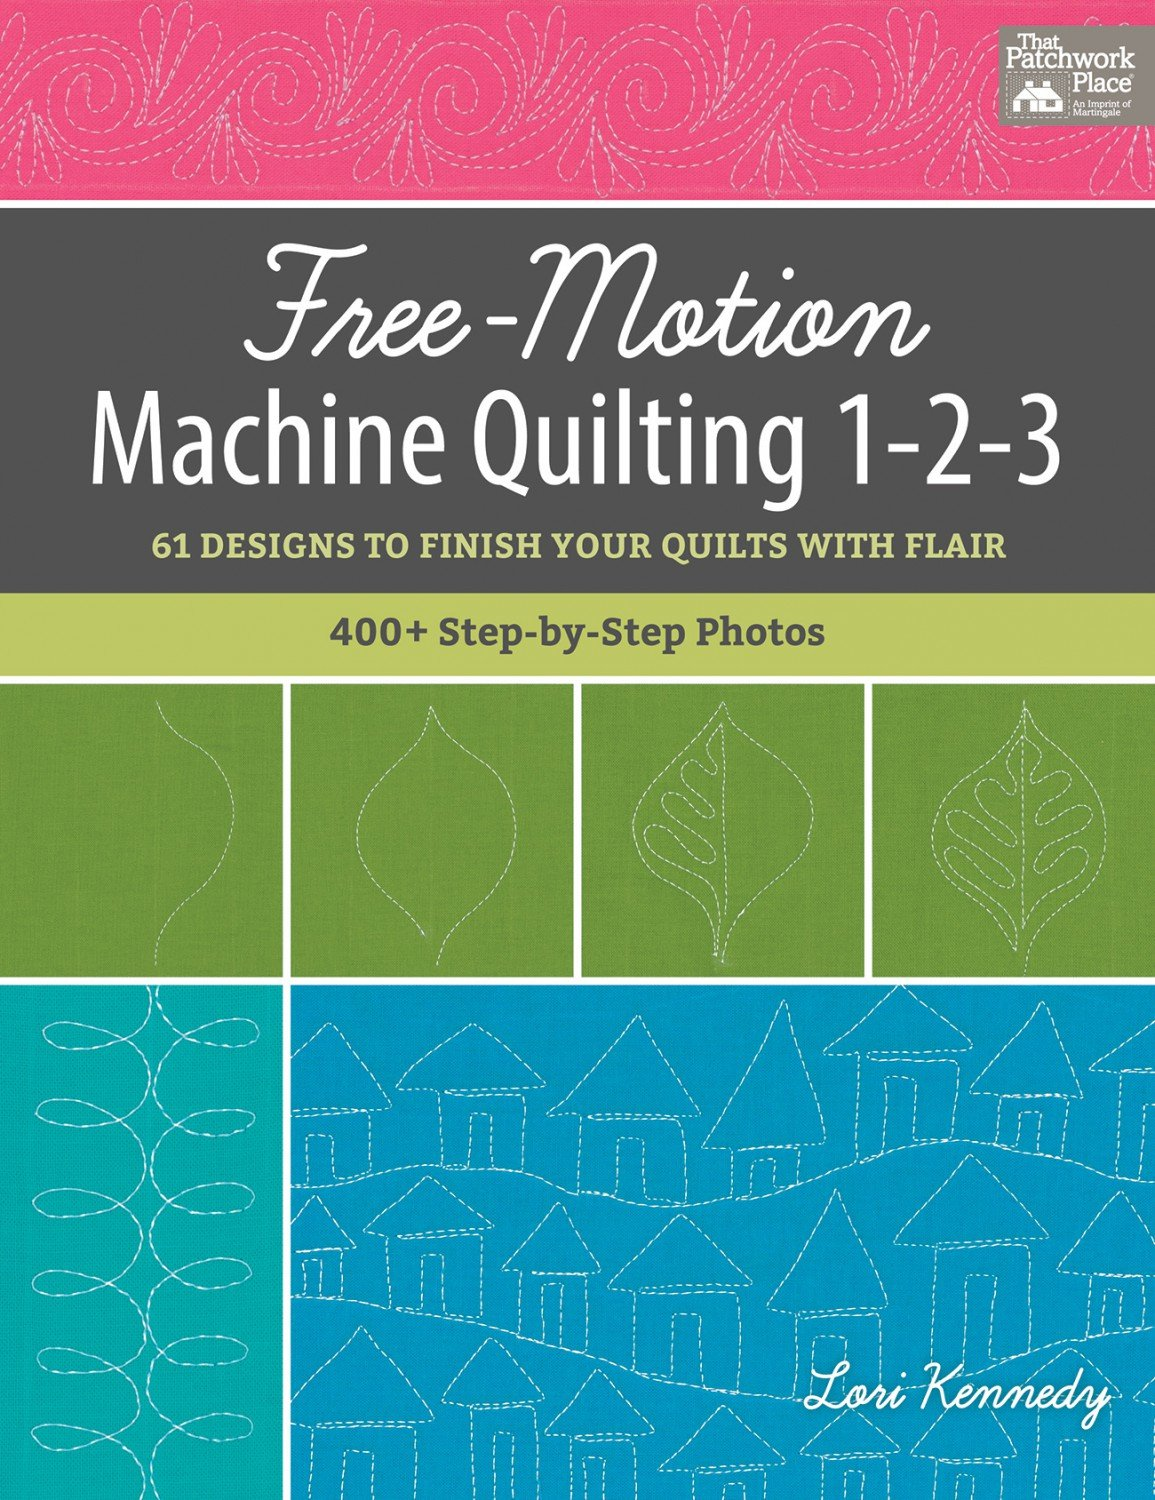 Free-Motion Machine Quilting 1-2-3: 61 Designs to Finish Your Quilts with Flair by Lori Kennedy